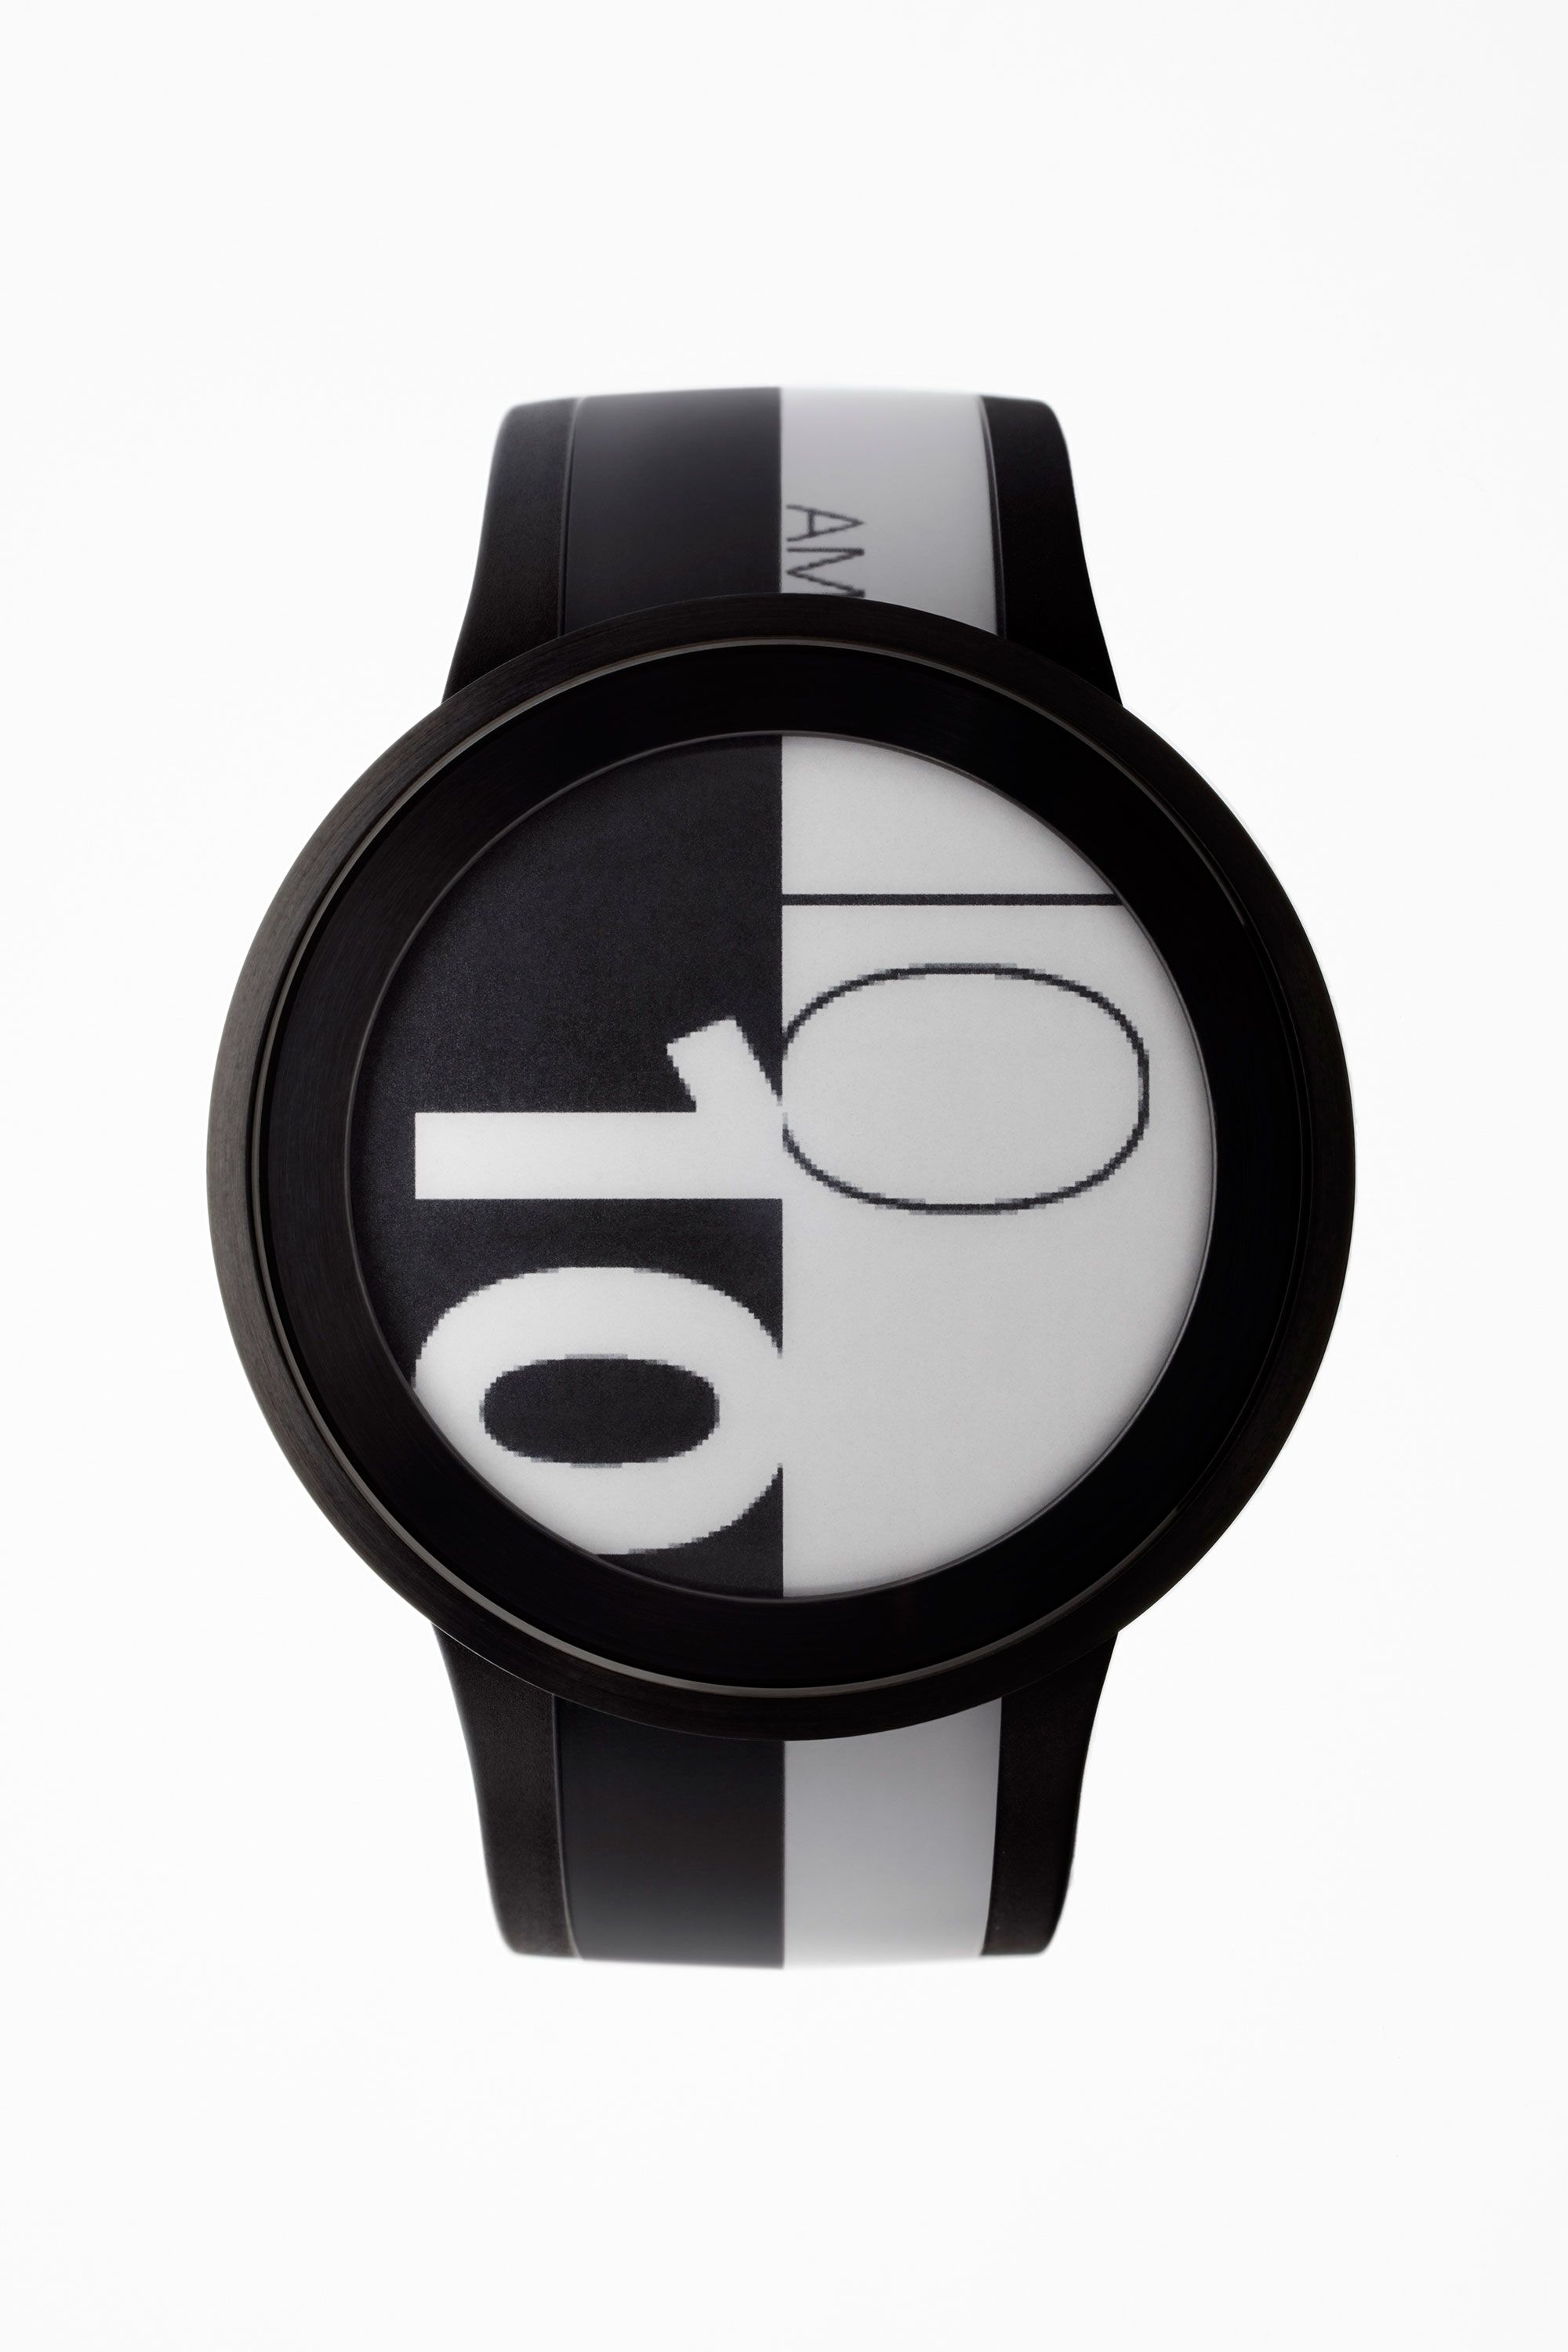 Sony Fes watch - Christmas gift guide